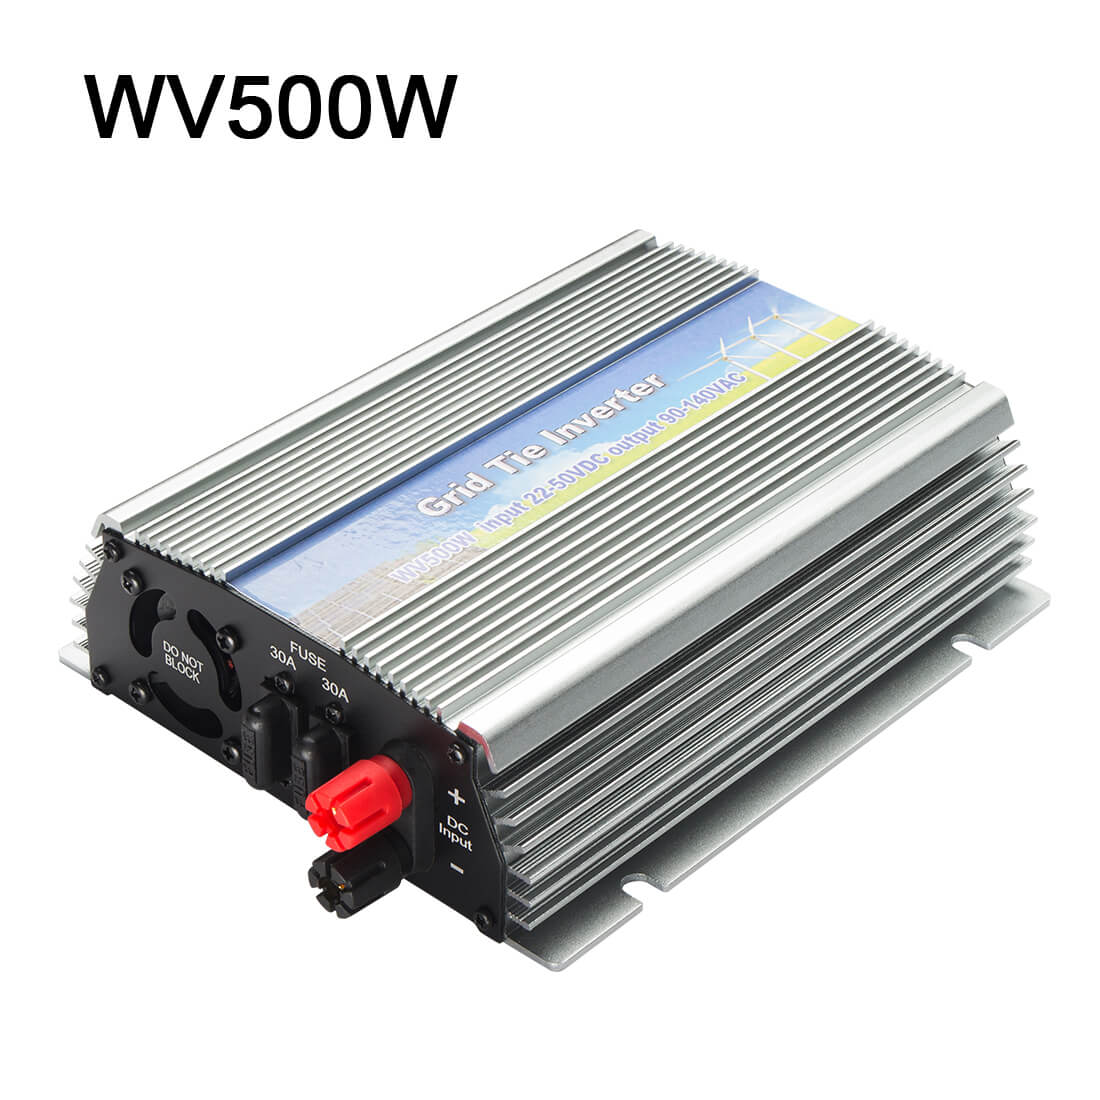 hight resolution of us gti 500w grid tie inverter mppt for solar panel stackable pure outback inverter wiring diagram 500w solar inverter grid tie wiring diagram